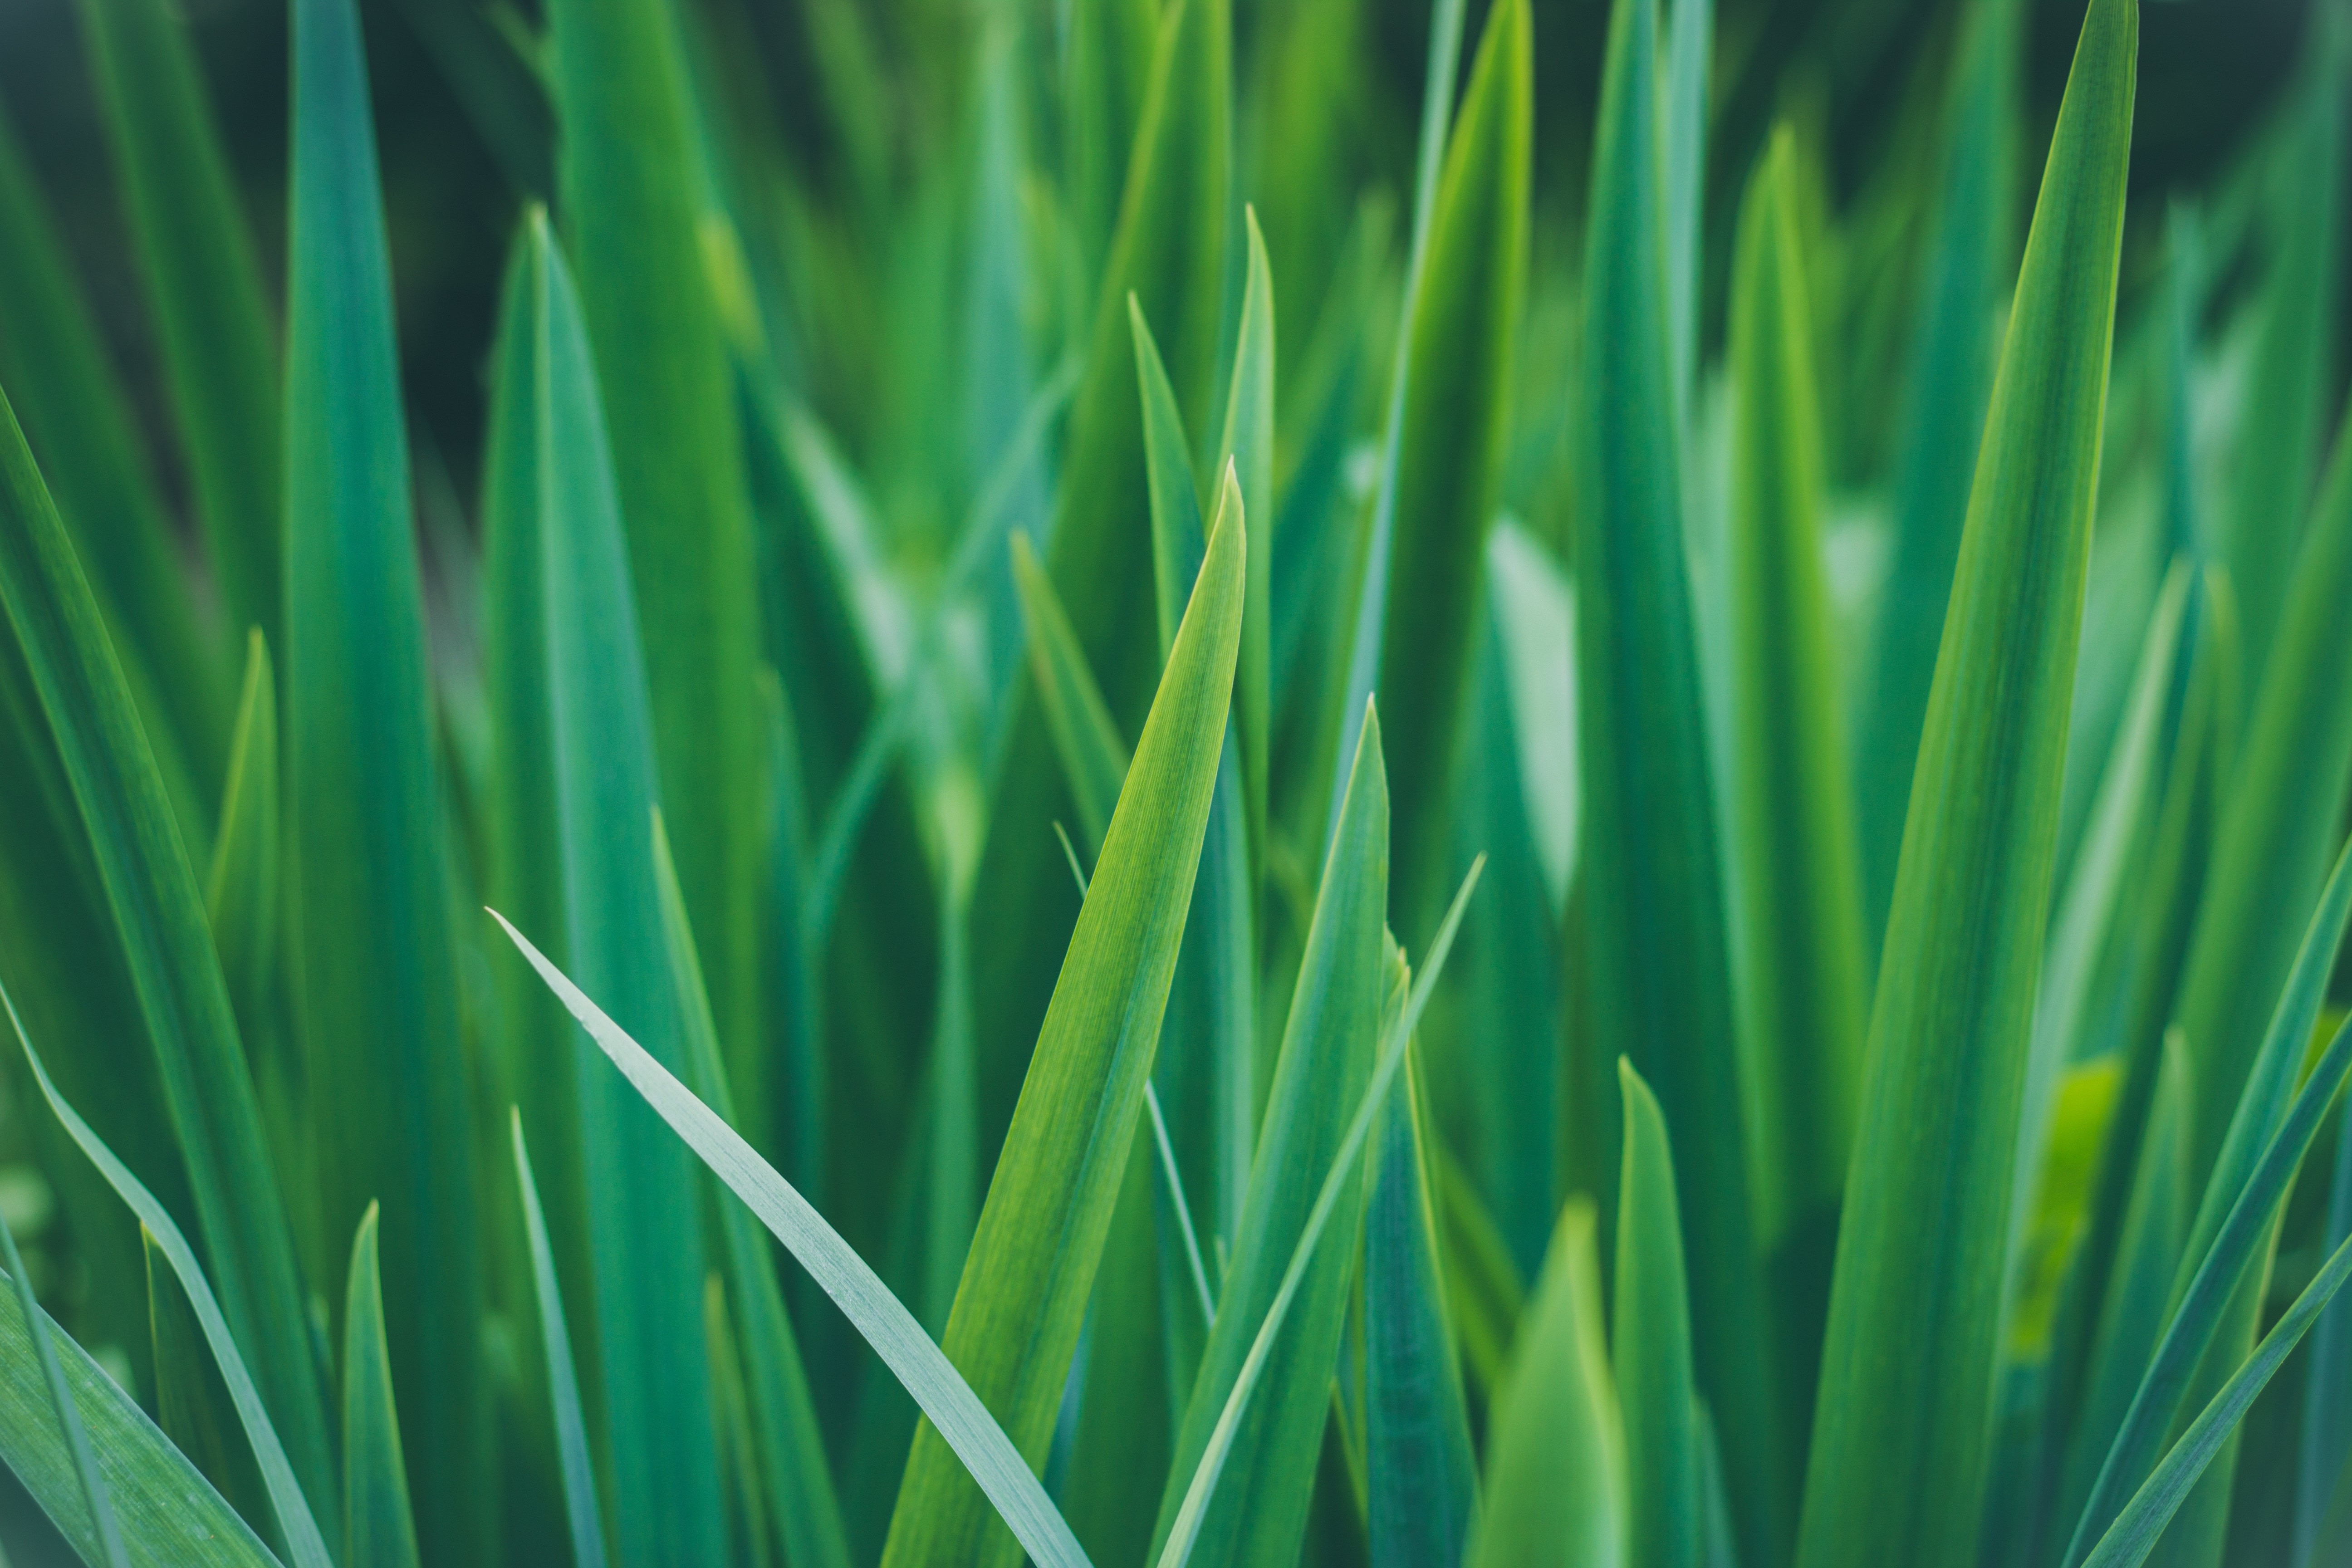 closeup photo of sword-shaped green leafed plant